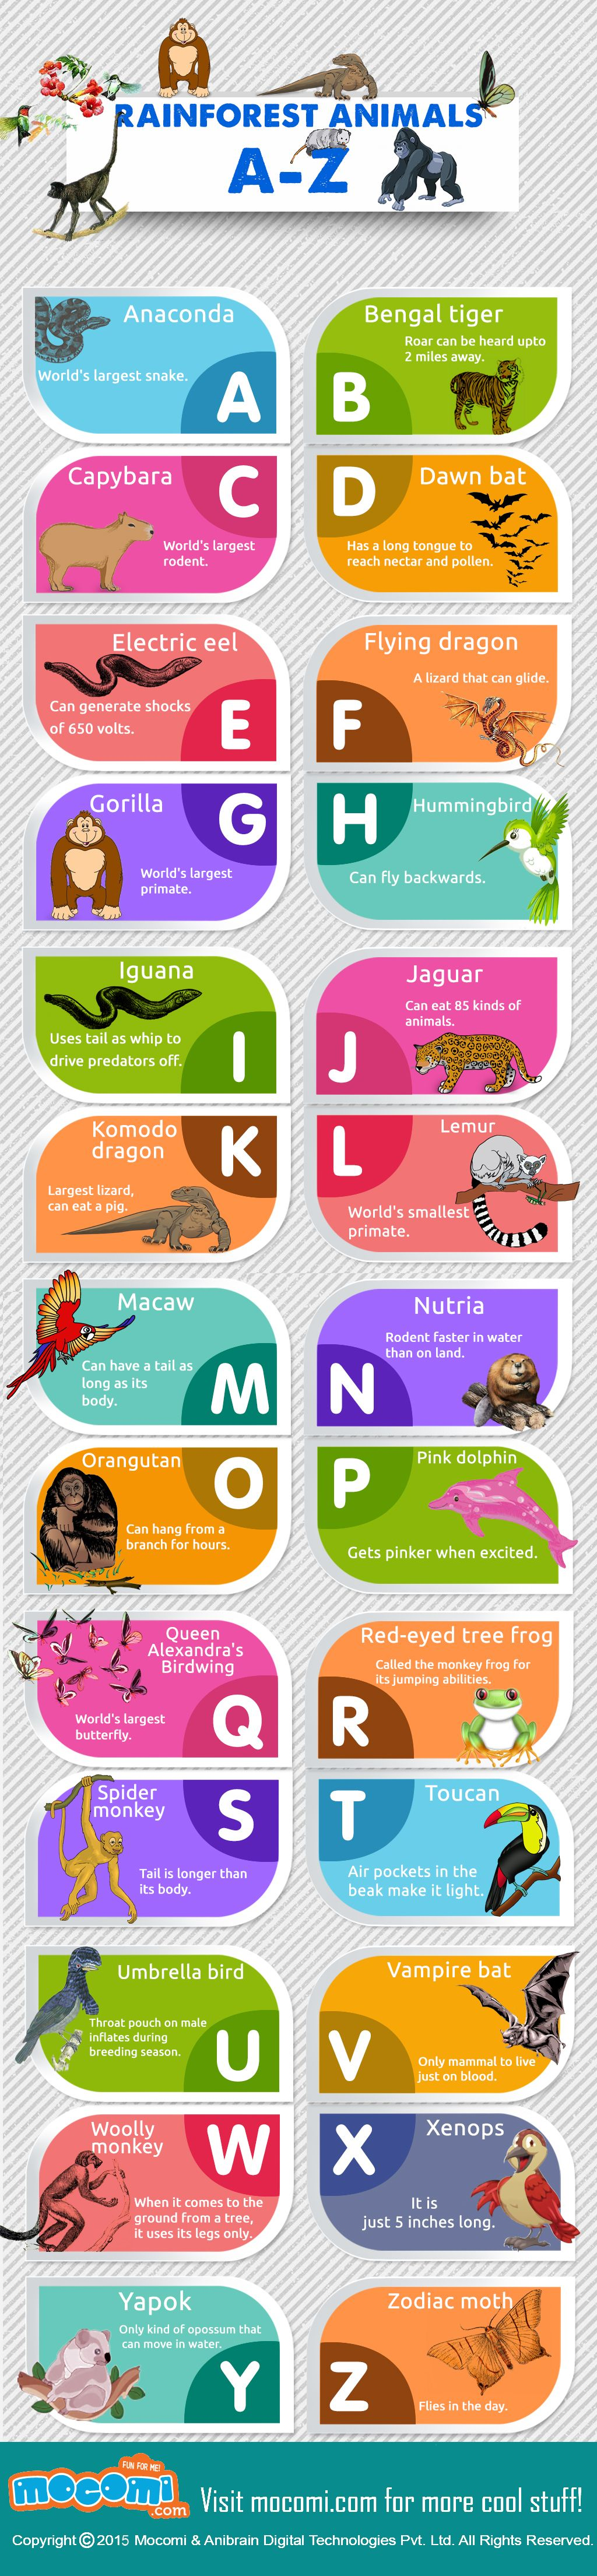 rainforest animals list a-z - general knowledge | infographics for